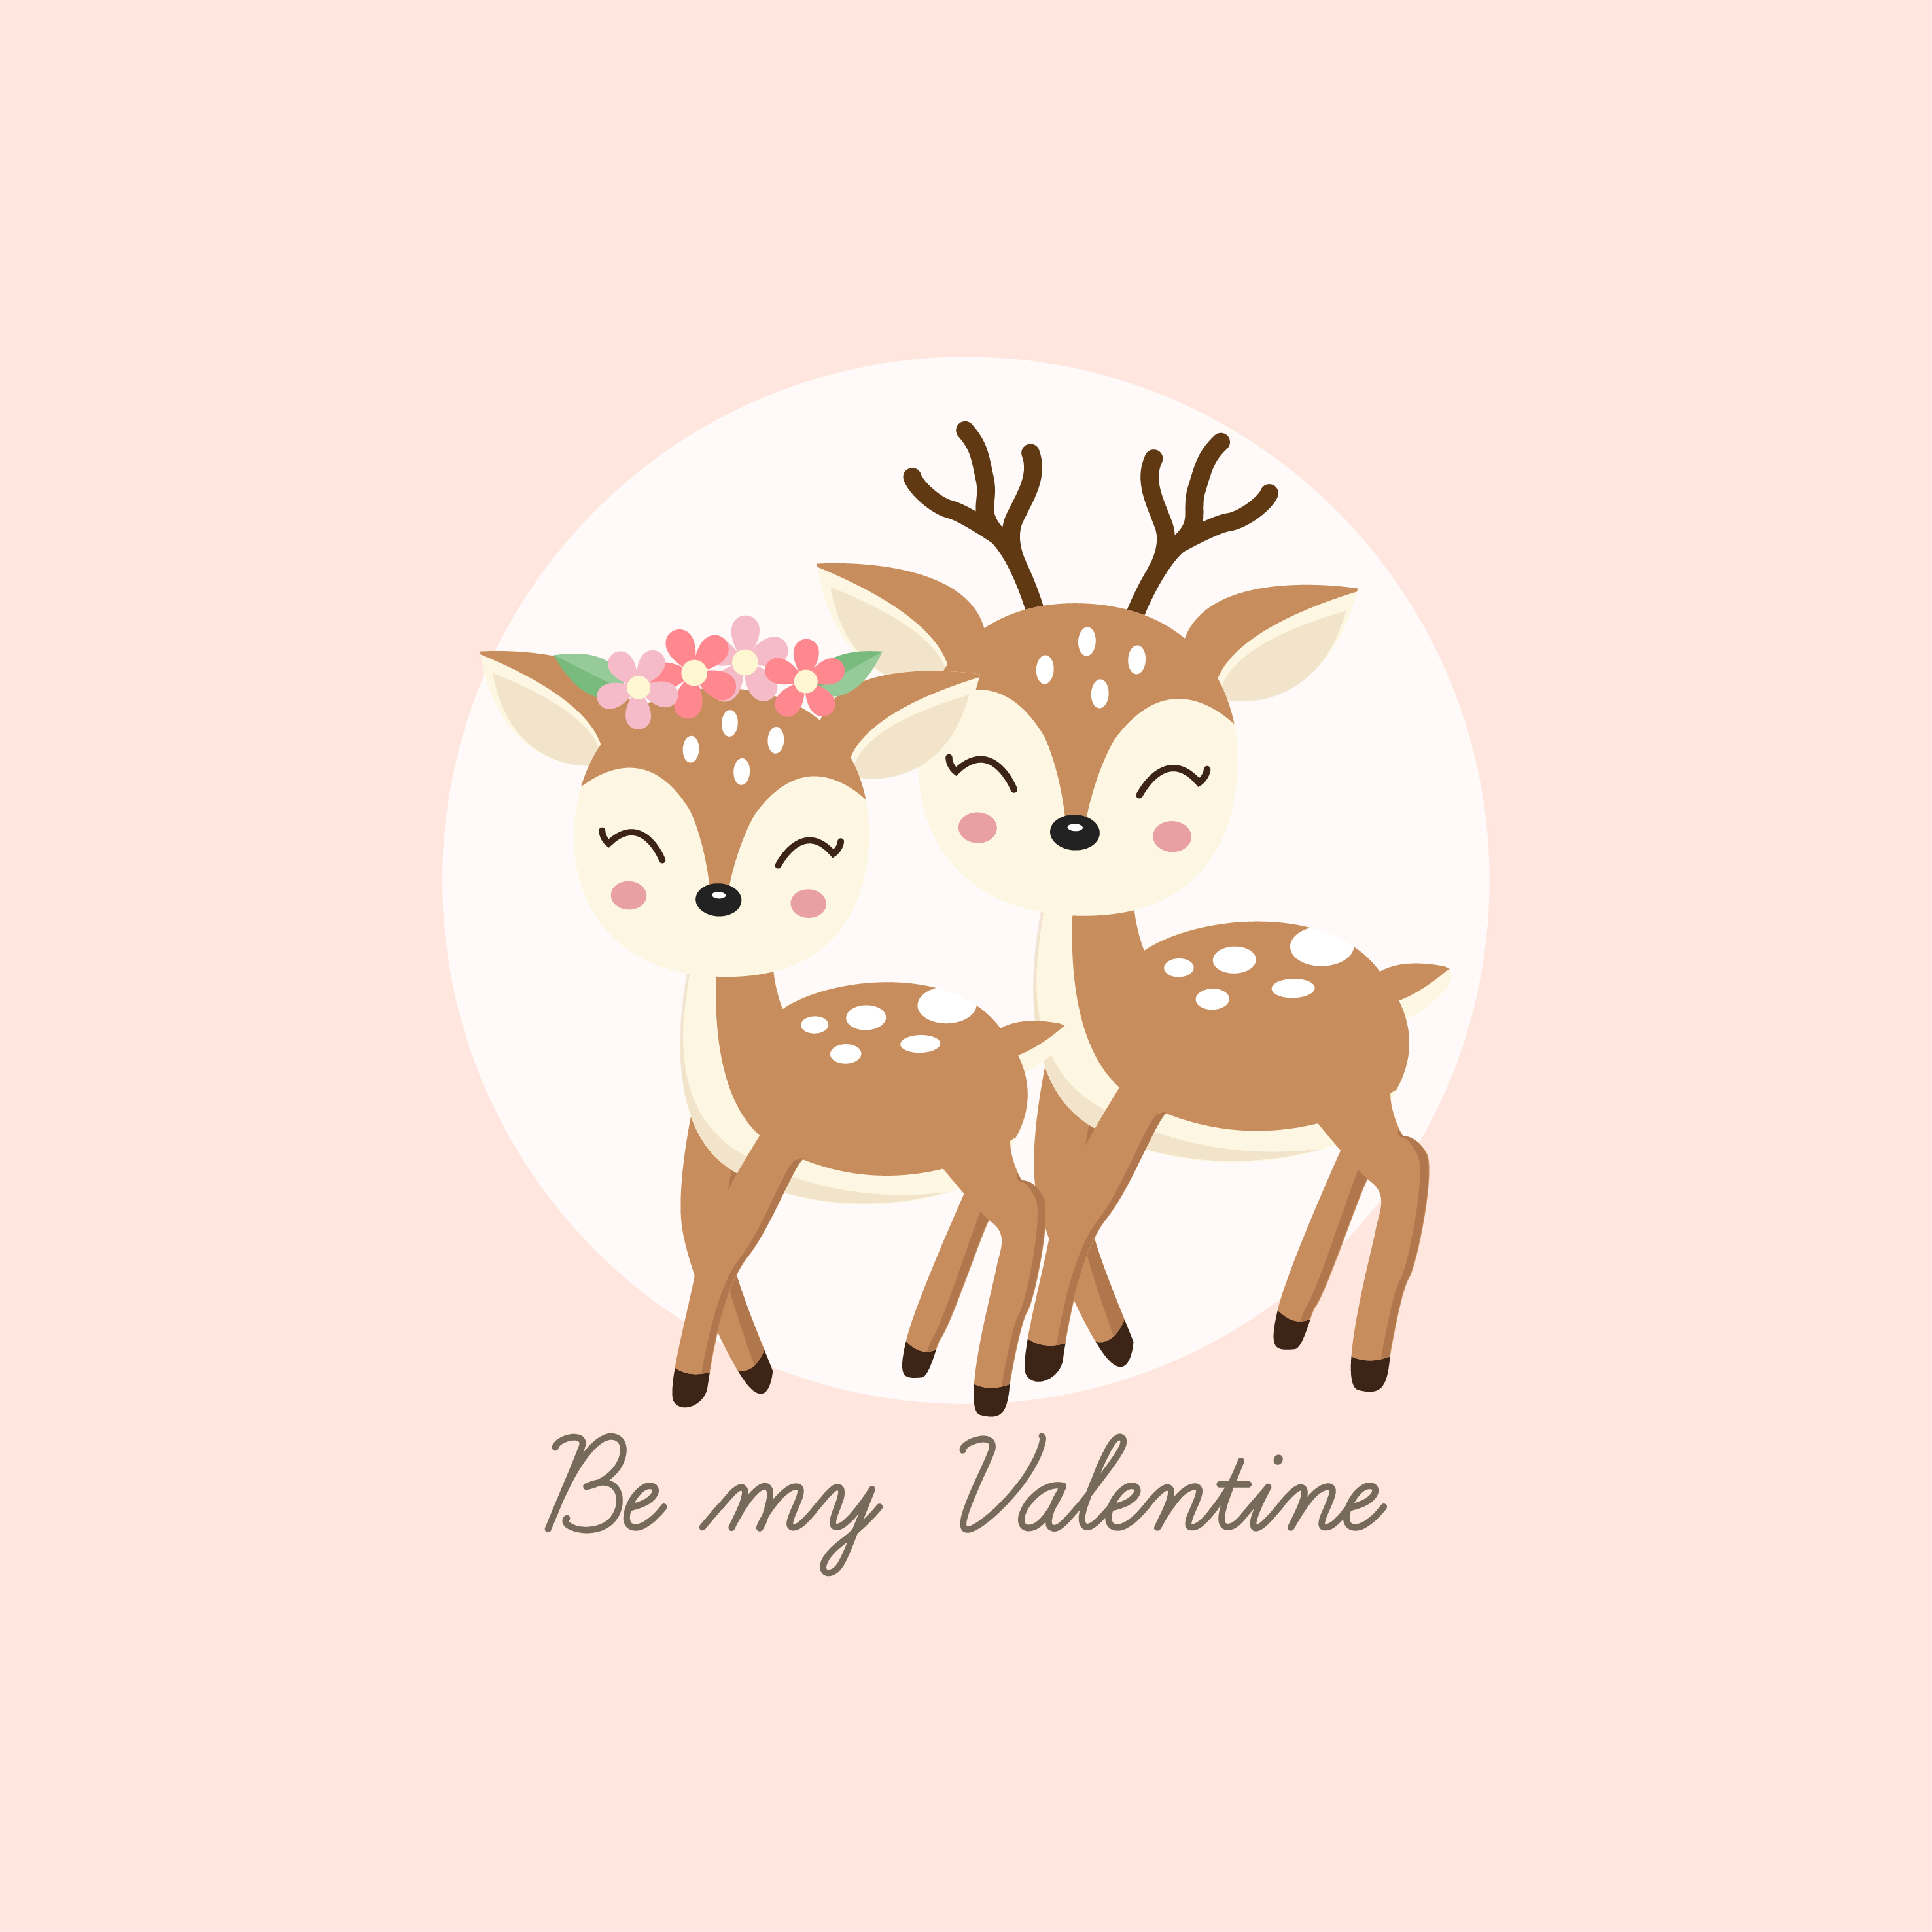 Happy Valentines Day Greeting Card Couple Deer Fall In Love Download Free Vectors Clipart Graphics Vector Art